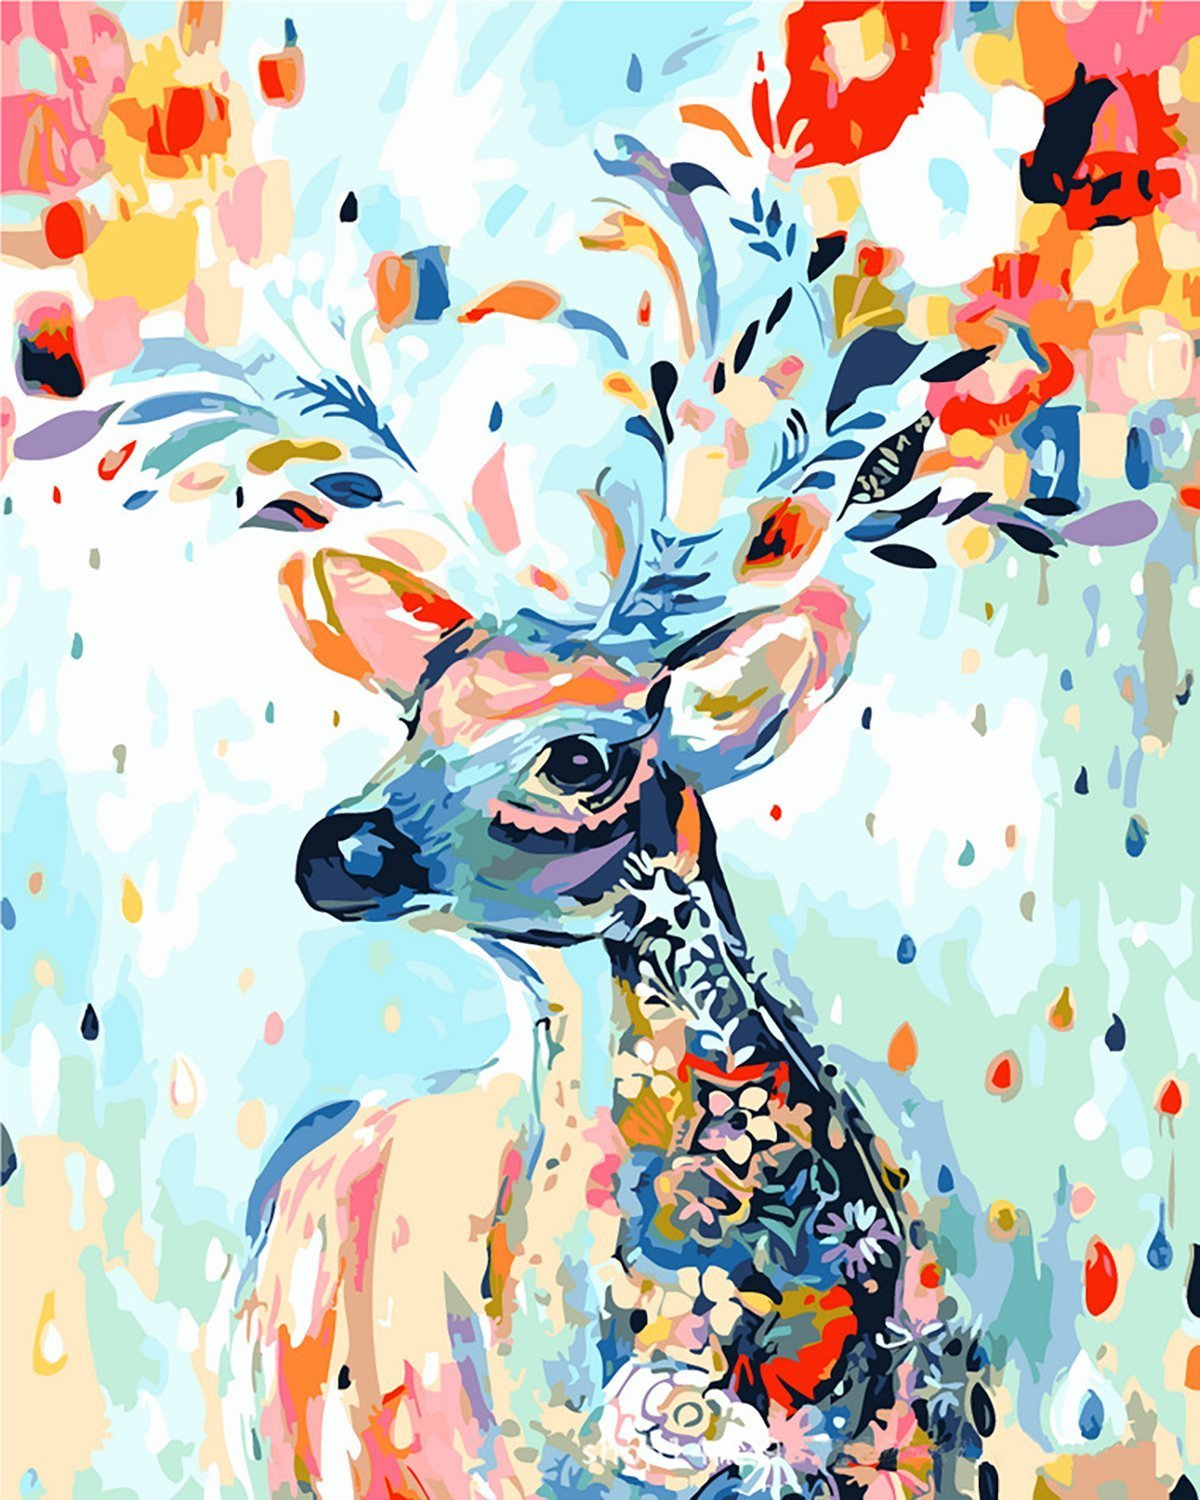 [Wooden Framed]Diy Oil Painting, Paint By Number Kits Home Decor Wall Pic Value Gift-Painted Deer 16X20 Inch by YXQSED